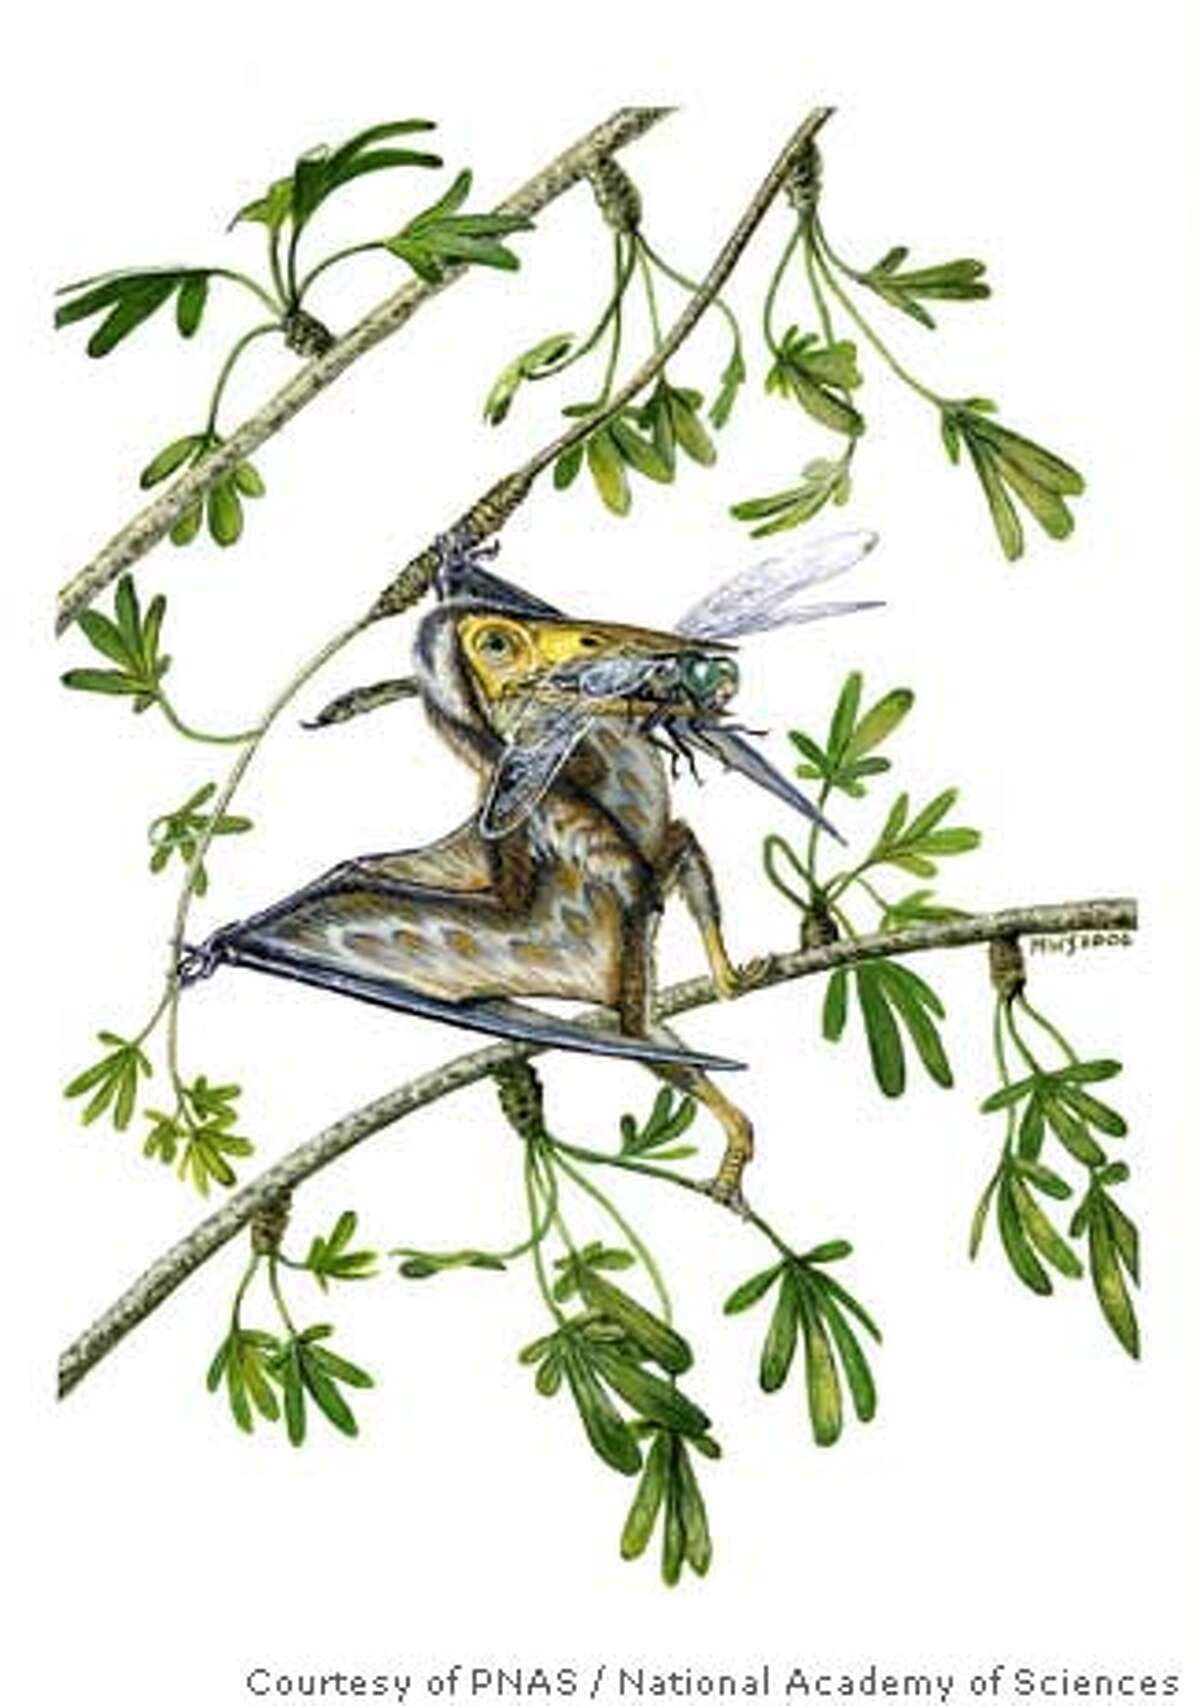 ** EMBARGOED UNTIL 5:00 P.M., MONDAY, FEB. 11 ** This undated handout artist rendering provided by the PNAS/National Academy of Sciences shows a life reconstruction of Nemicolopterus crypticus, a small derived flying reptile that lived in the gingko forests that existed some 120 million years ago in present China. As pterodactyls go it was small, toothless and had unexpectedly curved toes _ yet scientists are welcoming their new find as another piece in the puzzle of ancient life. (AP Photo/PNAS/National Academy of Sciences, Michael Skrepnickaption) Image courtesy of PNAS/National Academy of Sciences (copyright 2008). EMBARGOED UNTIL 5:00 PM, MONDAY, FEB. 11 / UNDATED HANDOUT ARTIST RENDERING PROVIDED BY PNAS/NATIONAL ACADEMY OF SCIENCES / NO SALES